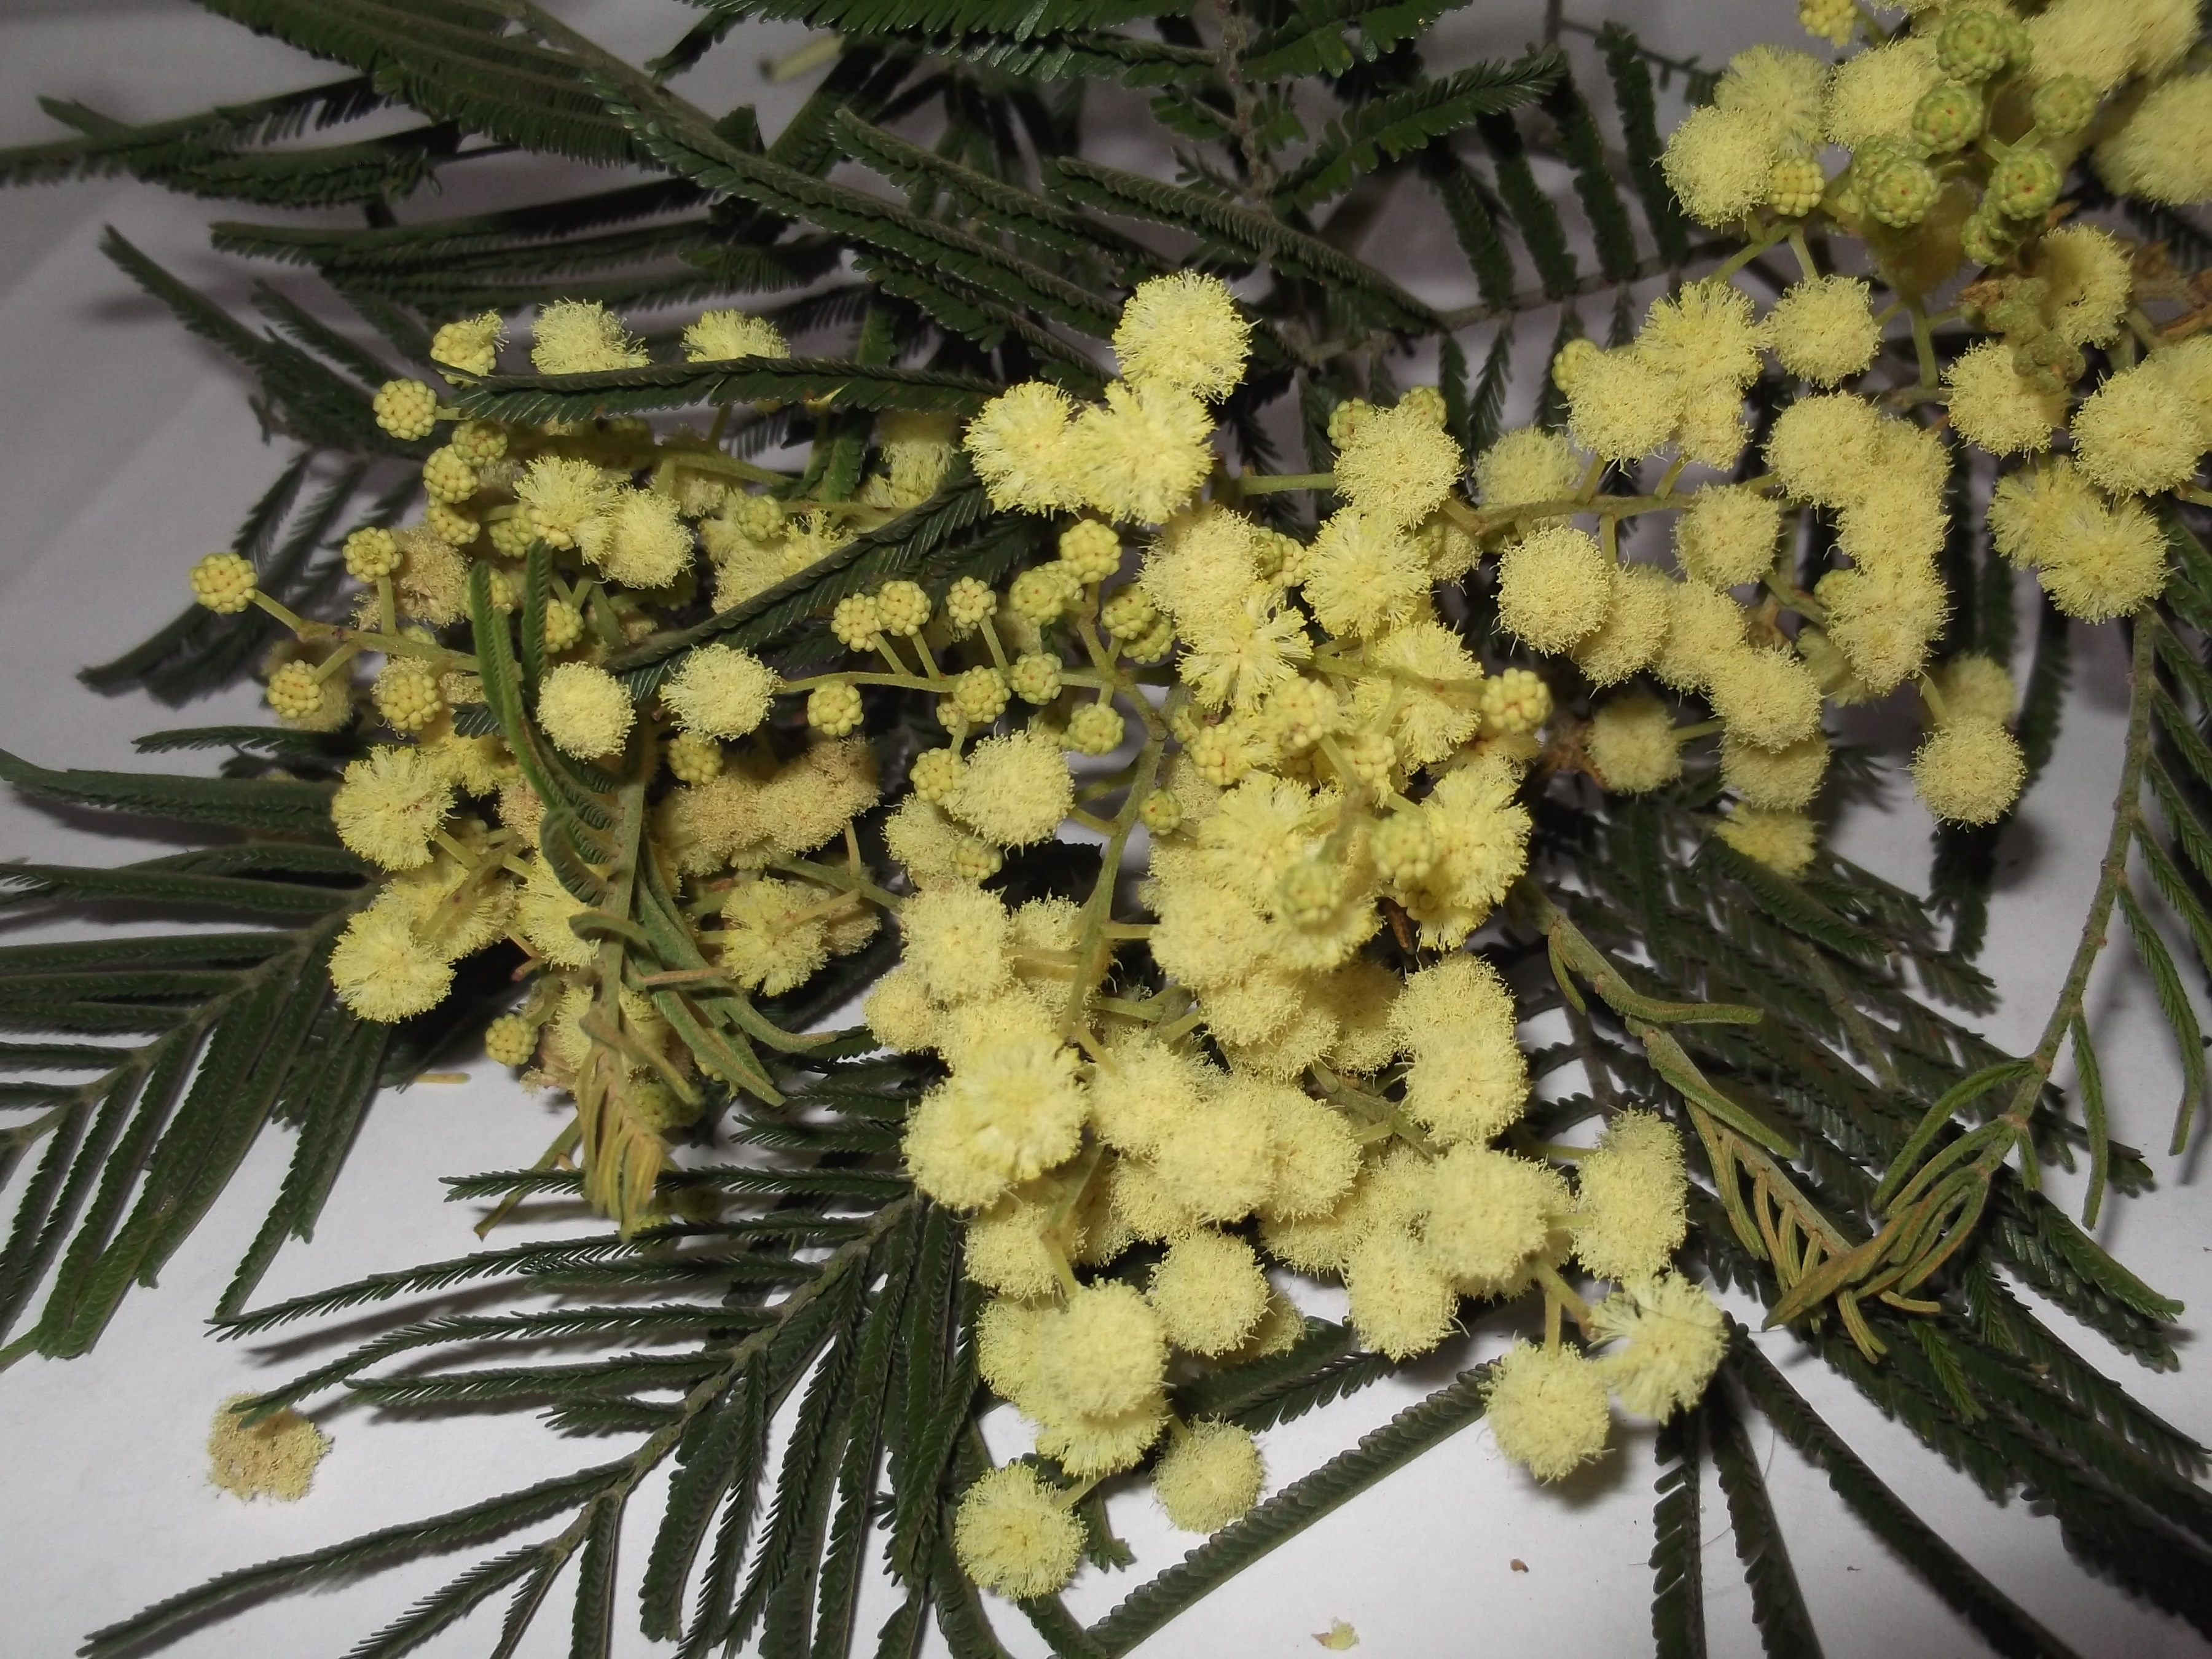 Flowers of the black wattle. Photo credit: Wikimedia Commons